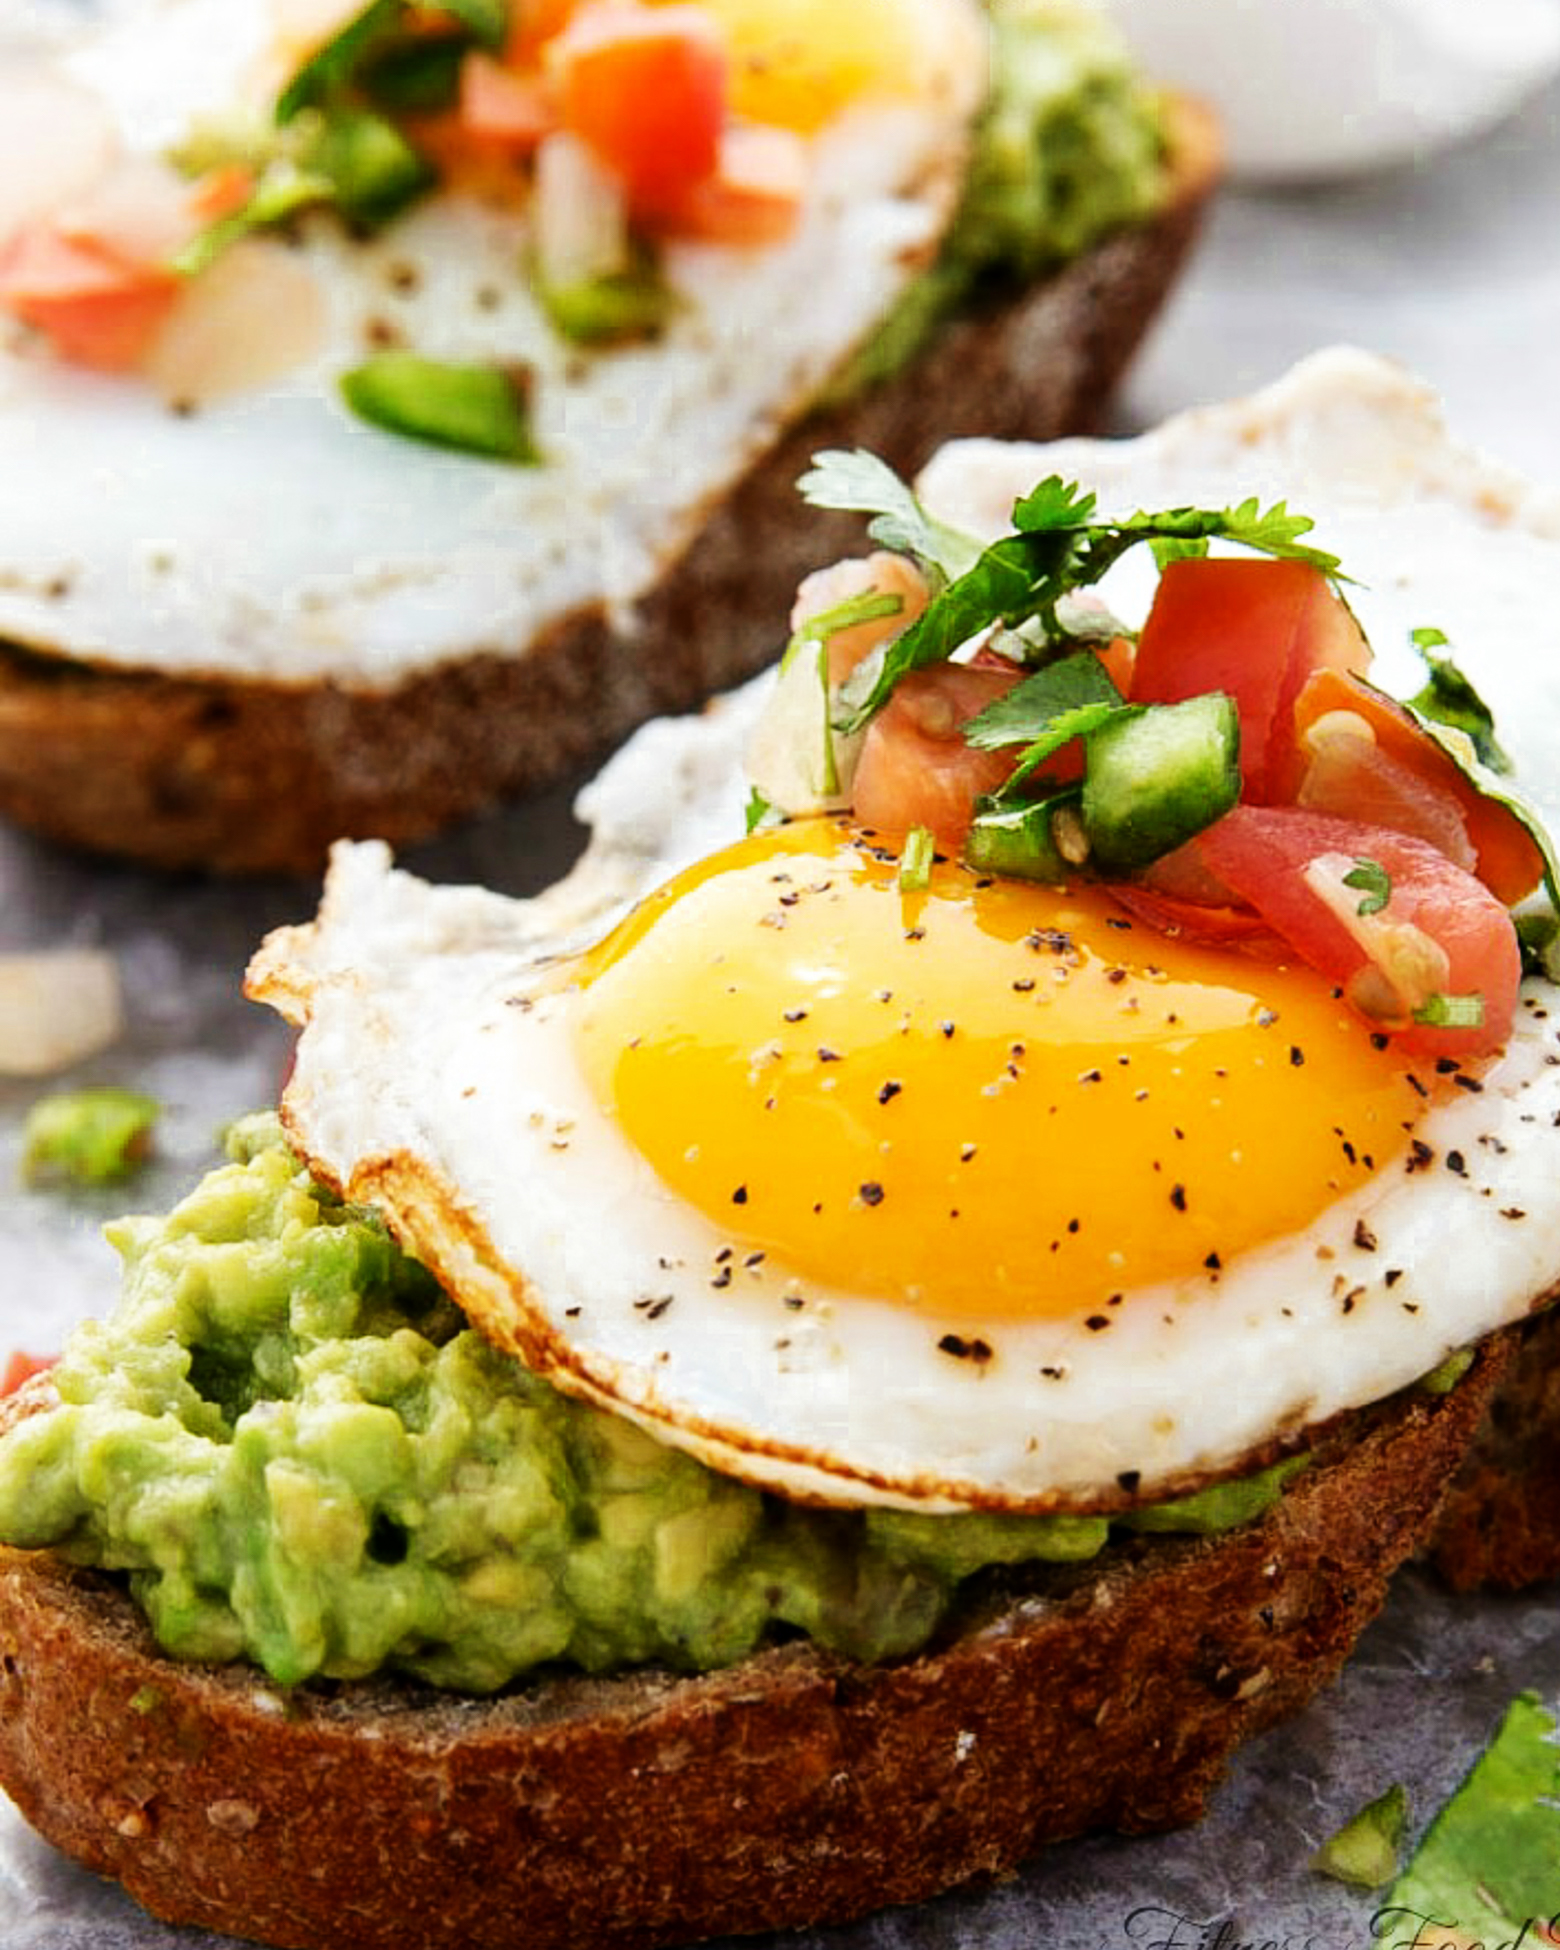 Avocado Toast with Egg topped with salt, pepper and pico de gallo.